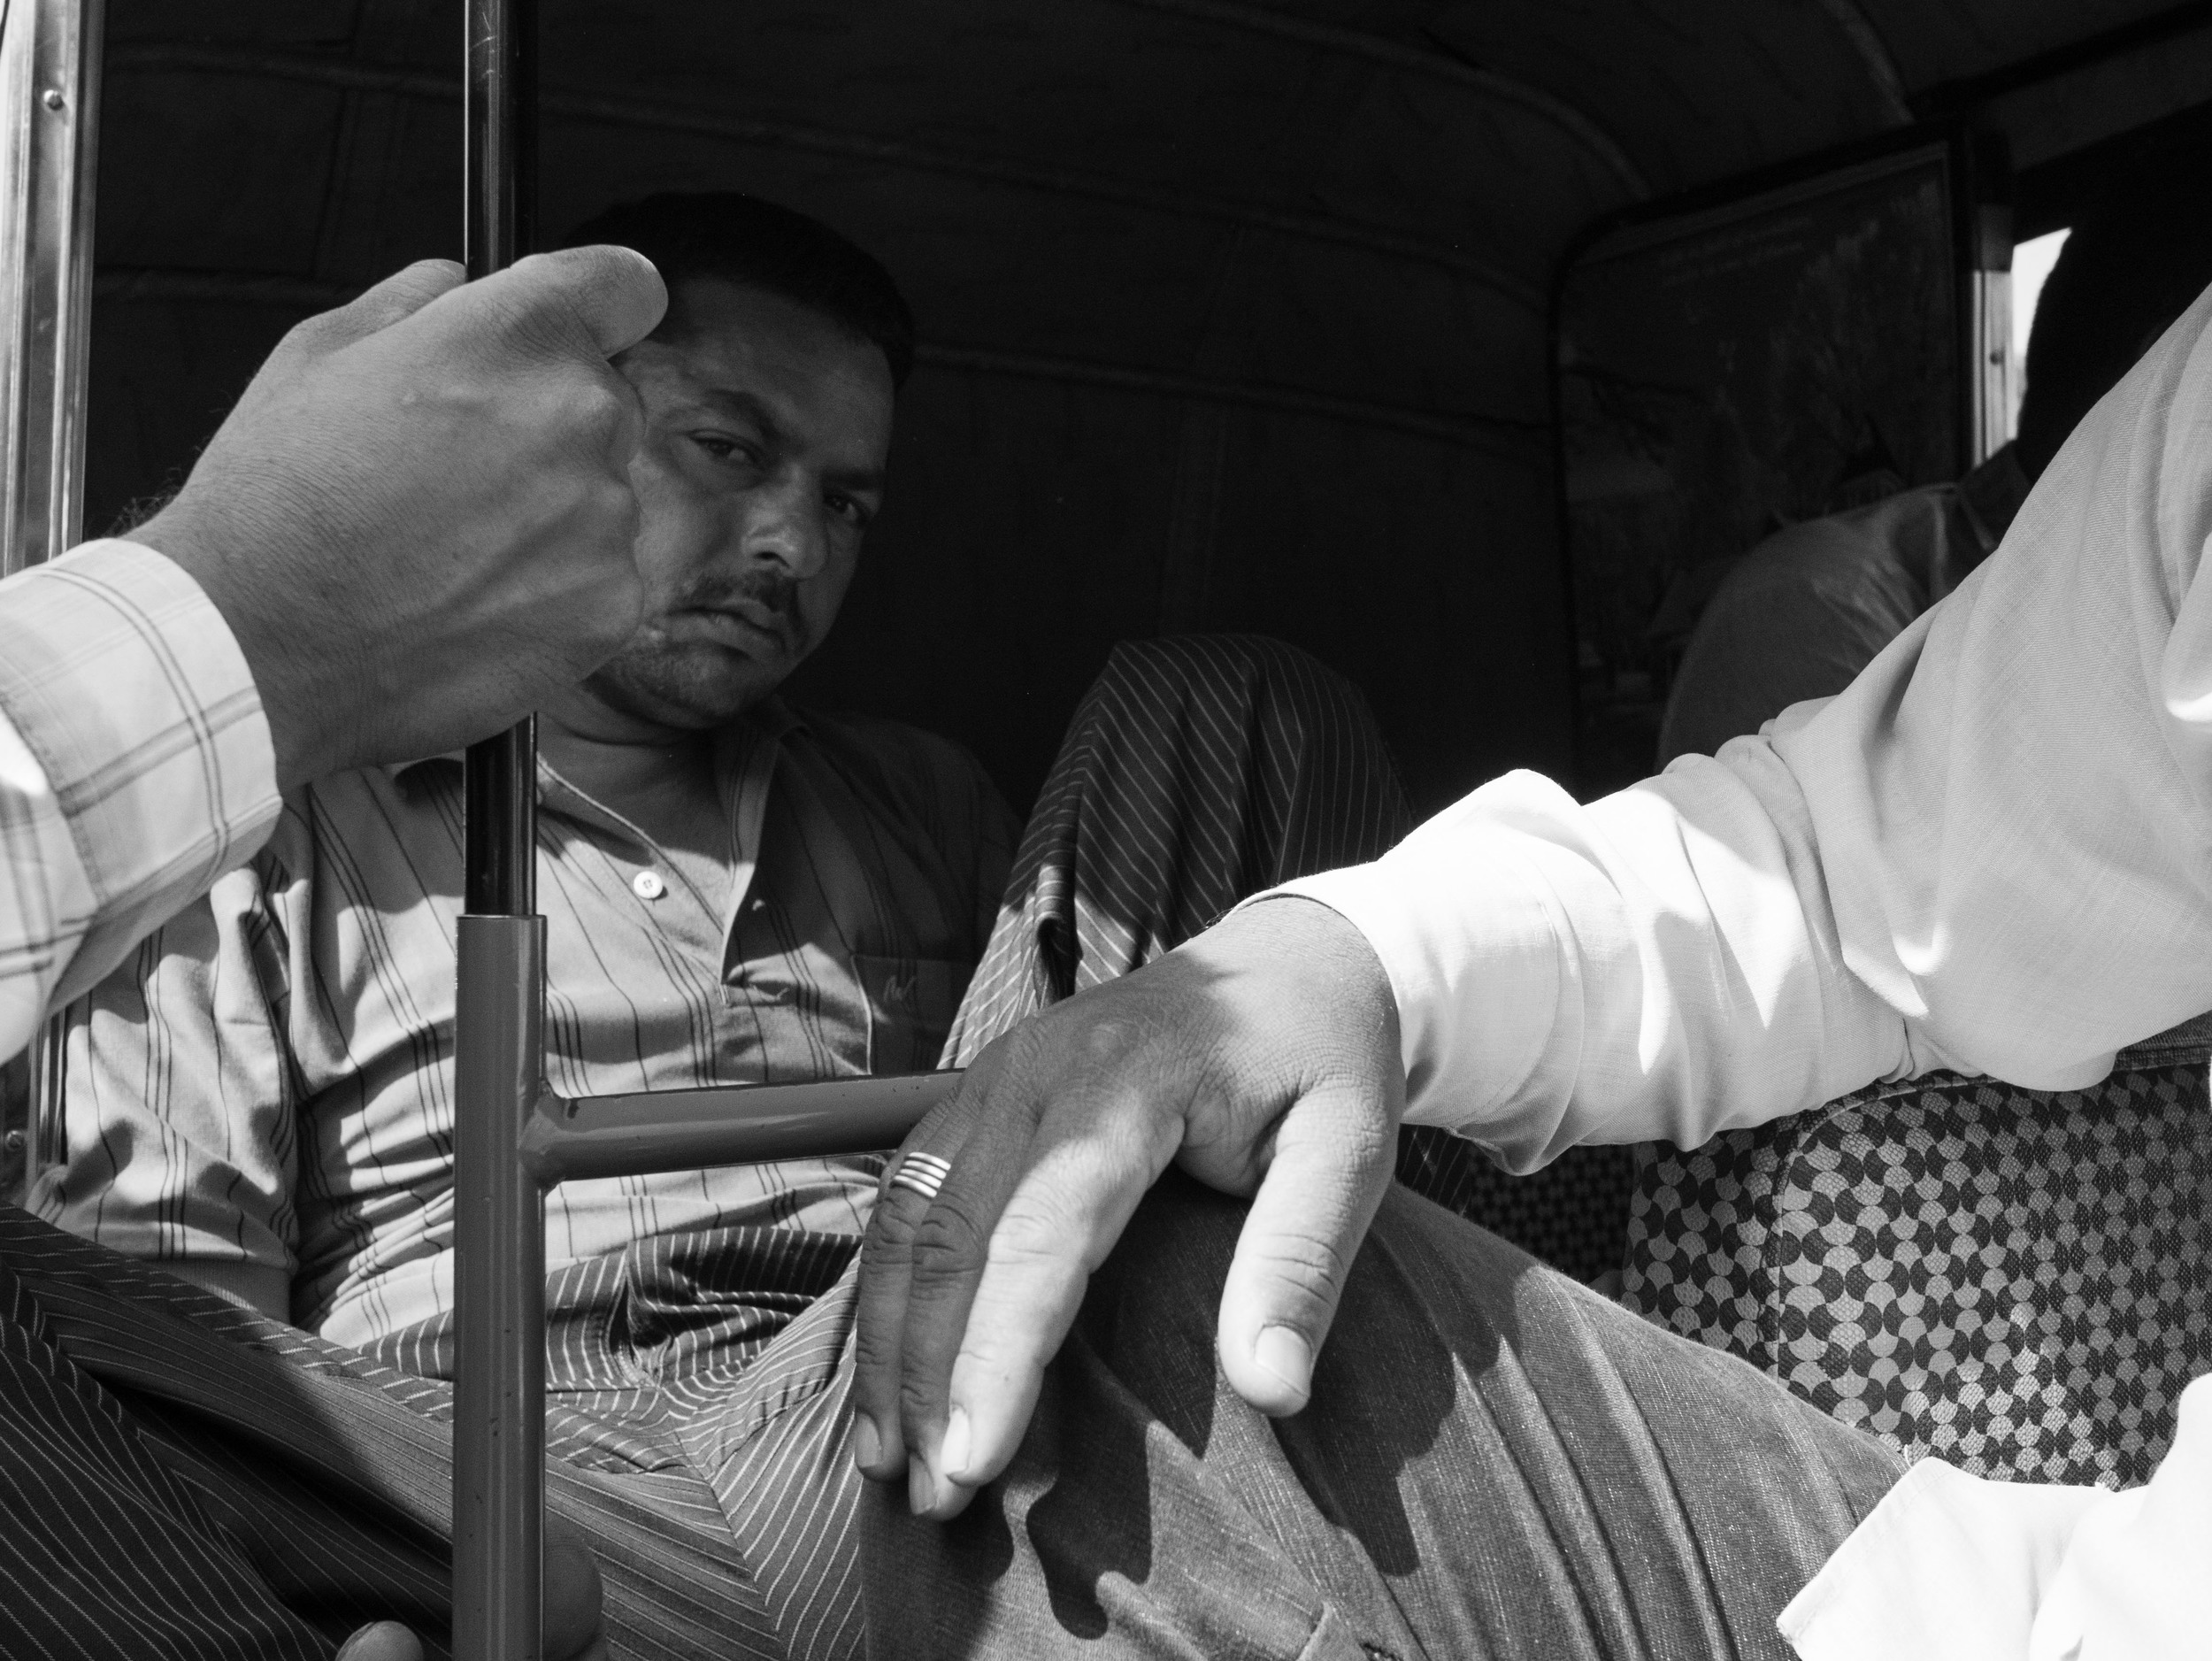 A candid photograph of an autorickshaw driver taken by street photographer Gagan Sadana in Vadodara, Gujarat in India as part of the street photography series 'For Hire'